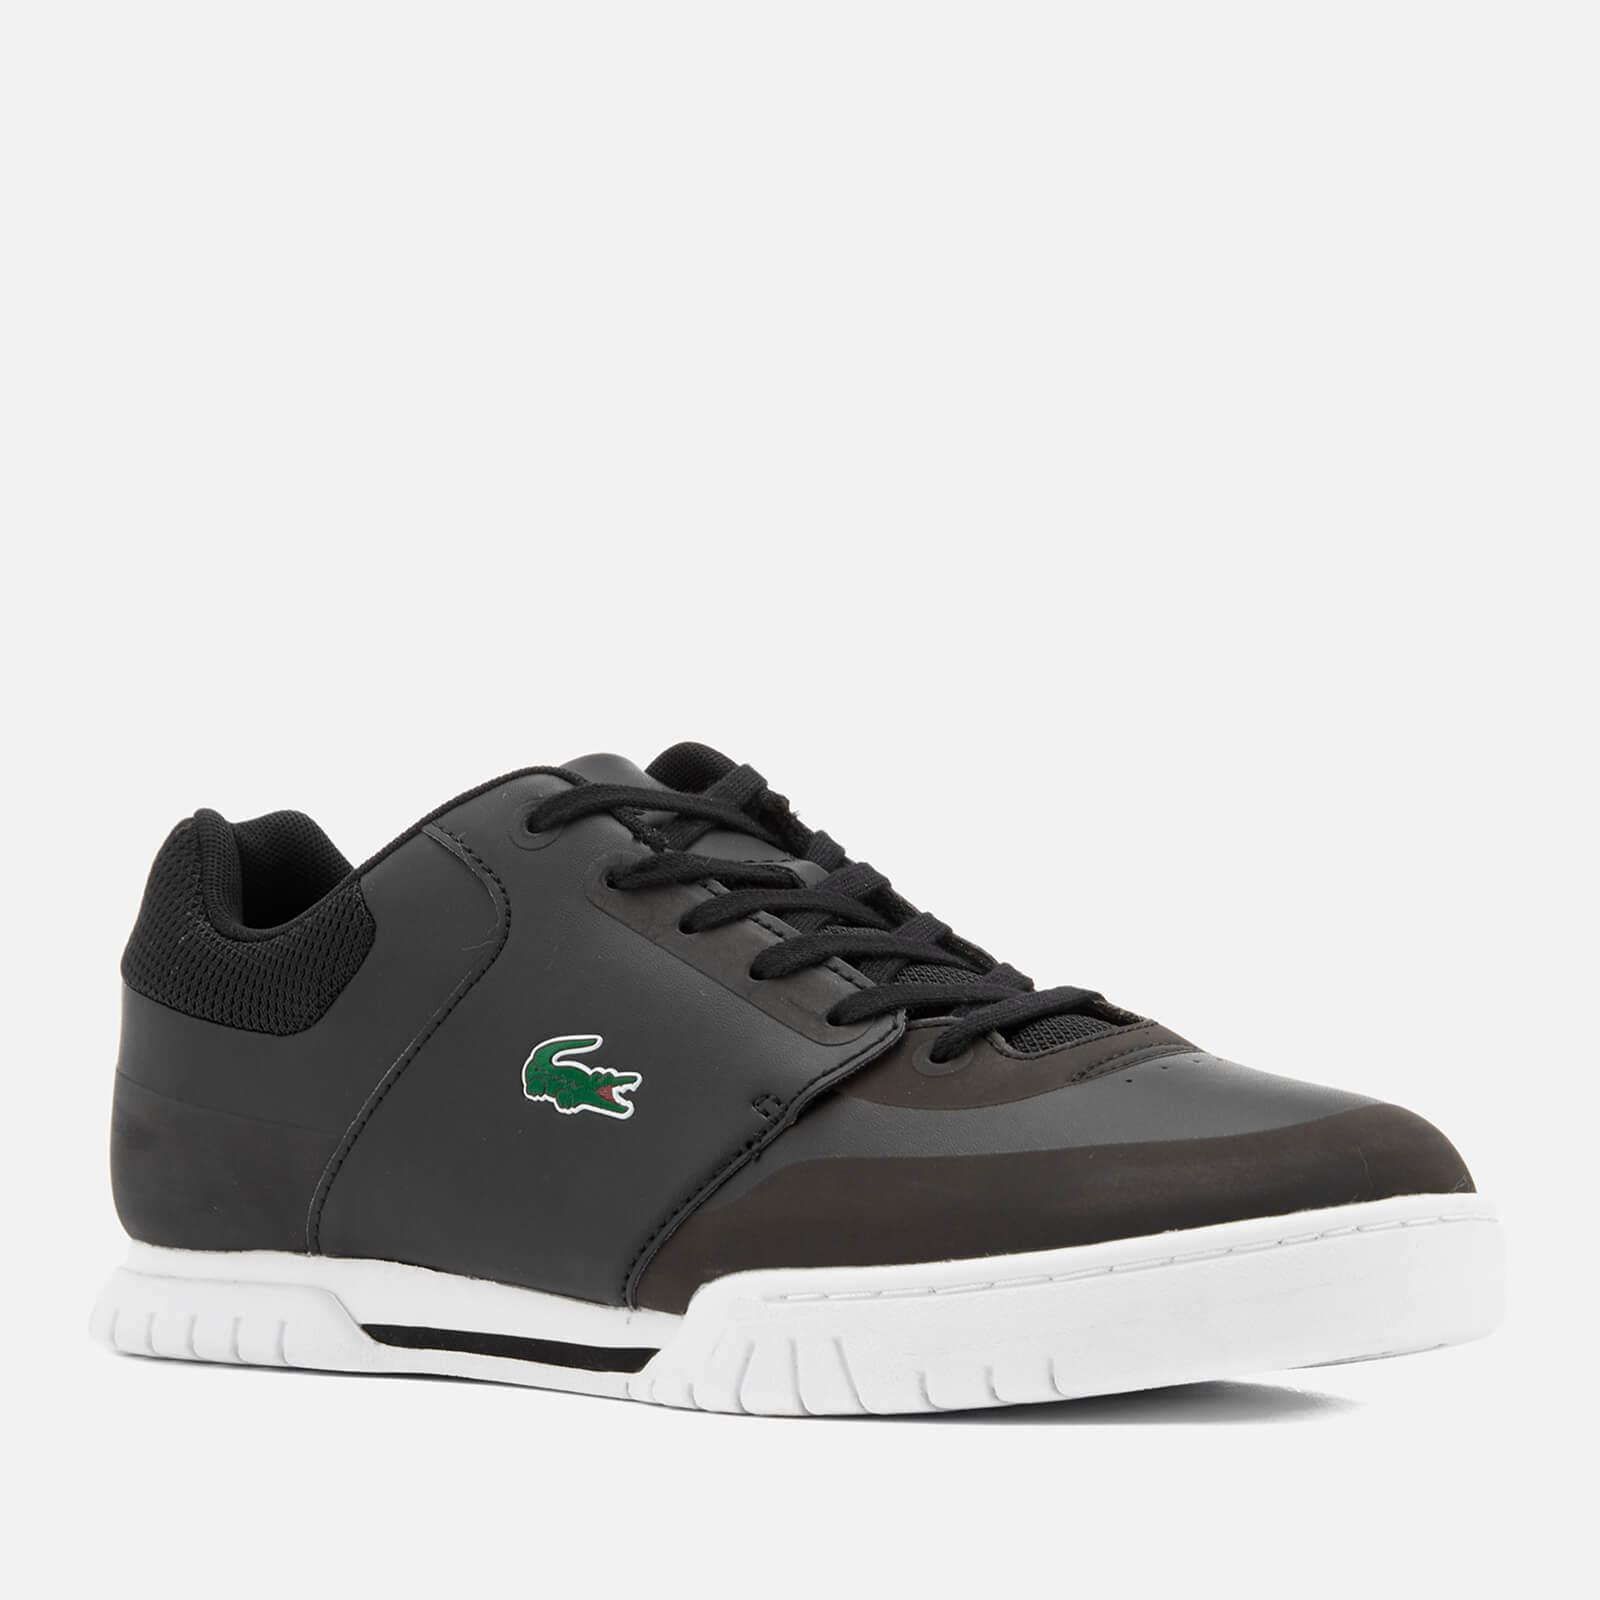 6c666dc1346d ... Rene Platform Graphic Laced Trainers Shoes Black White Red eBay  Lyst -  Lacoste Men s Indiana Evo 316 Trainers in Black for Men ...